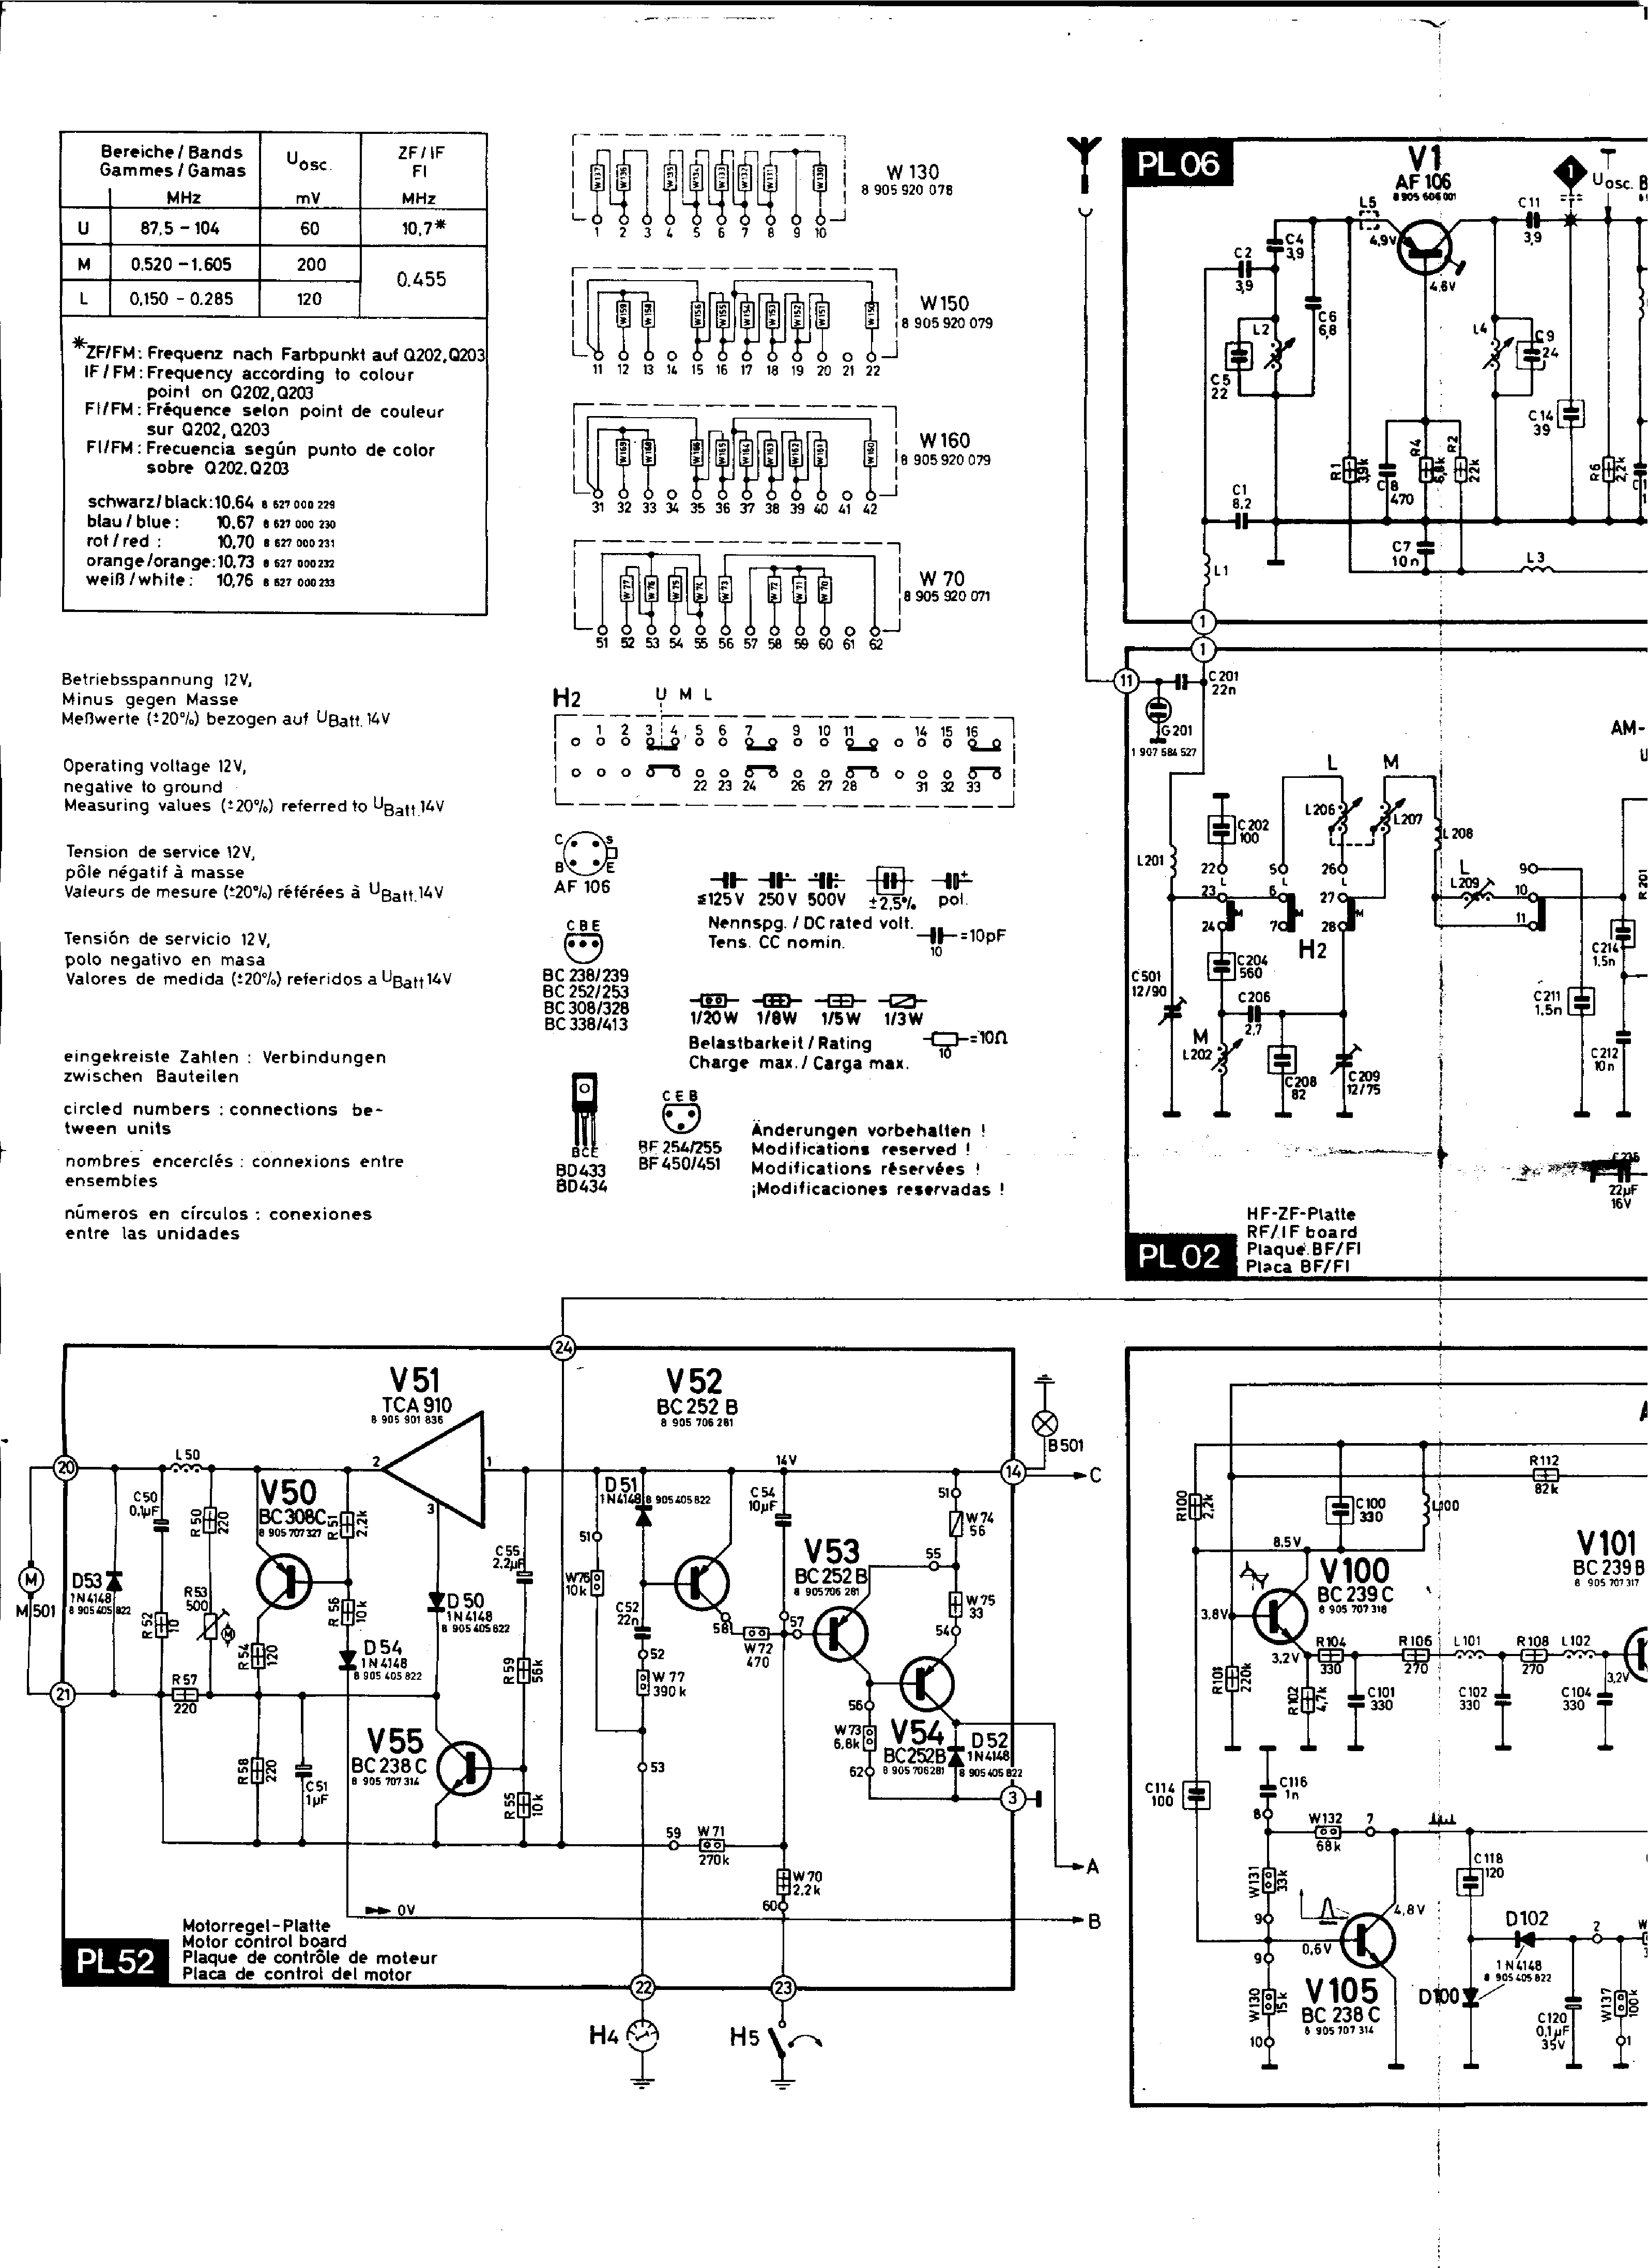 wiring diagram for blaupunkt radio   34 wiring diagram